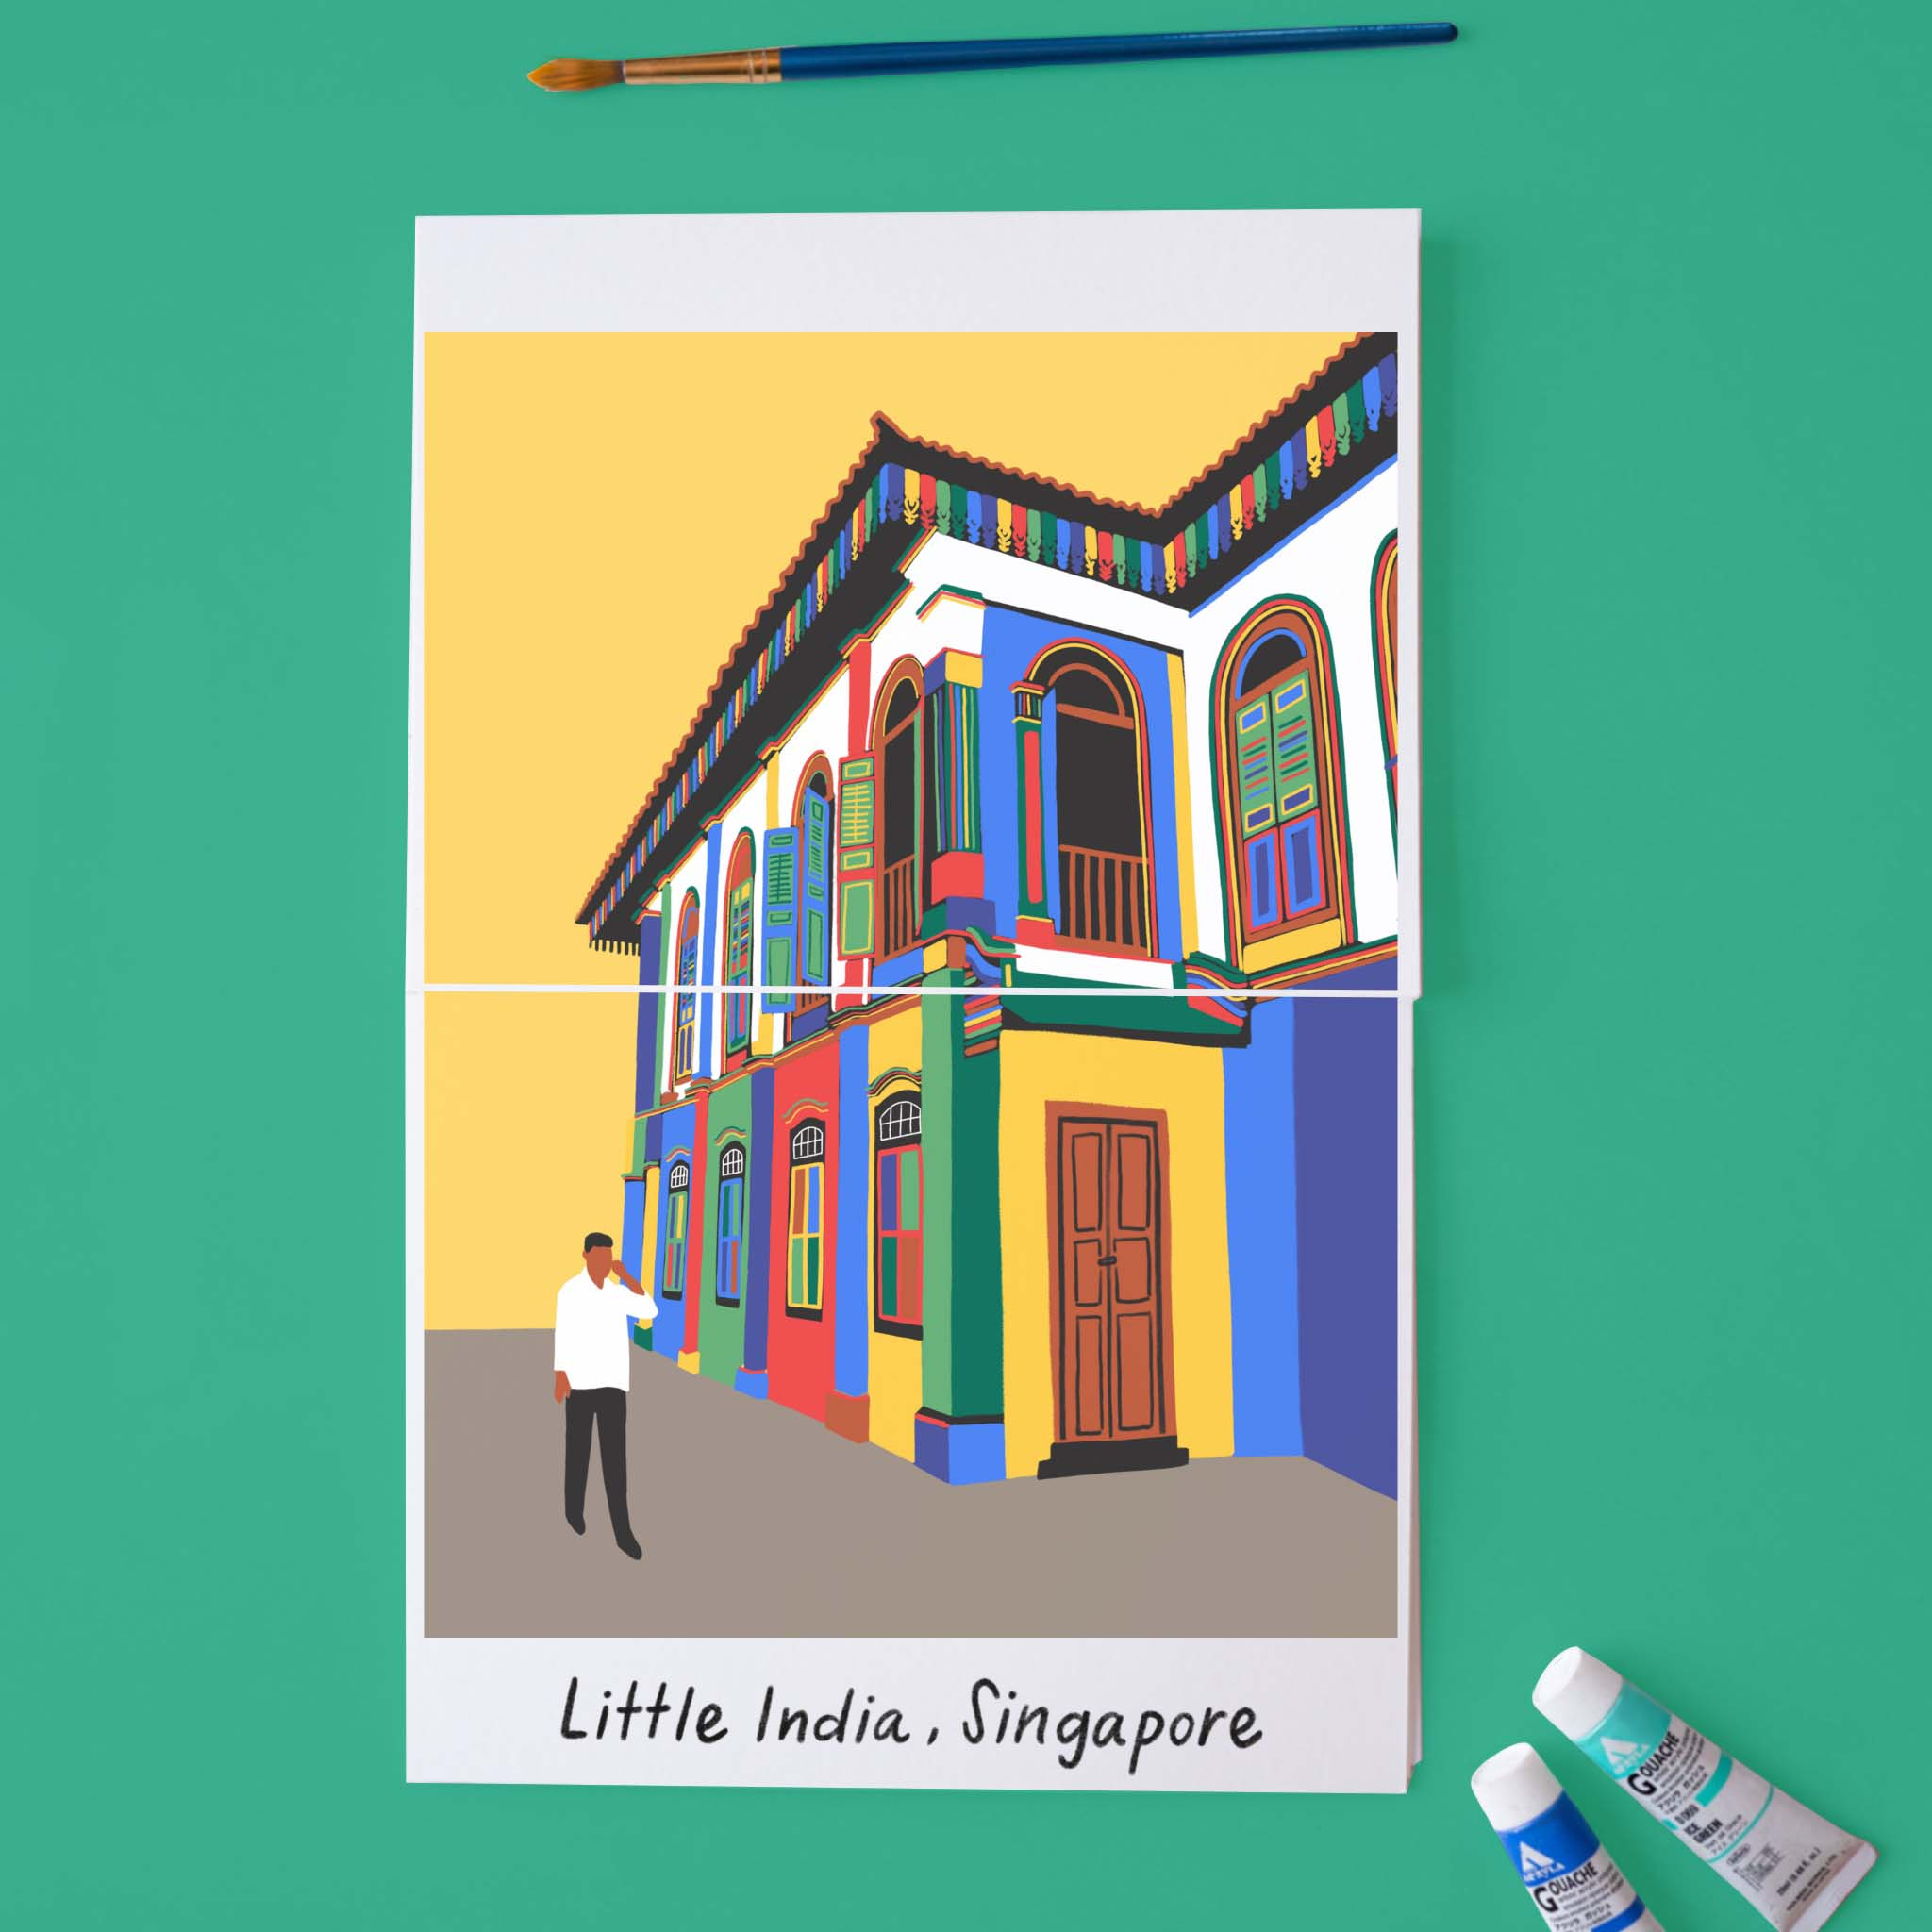 Copy of Traveling iPad drawing series: Little India, Singapore